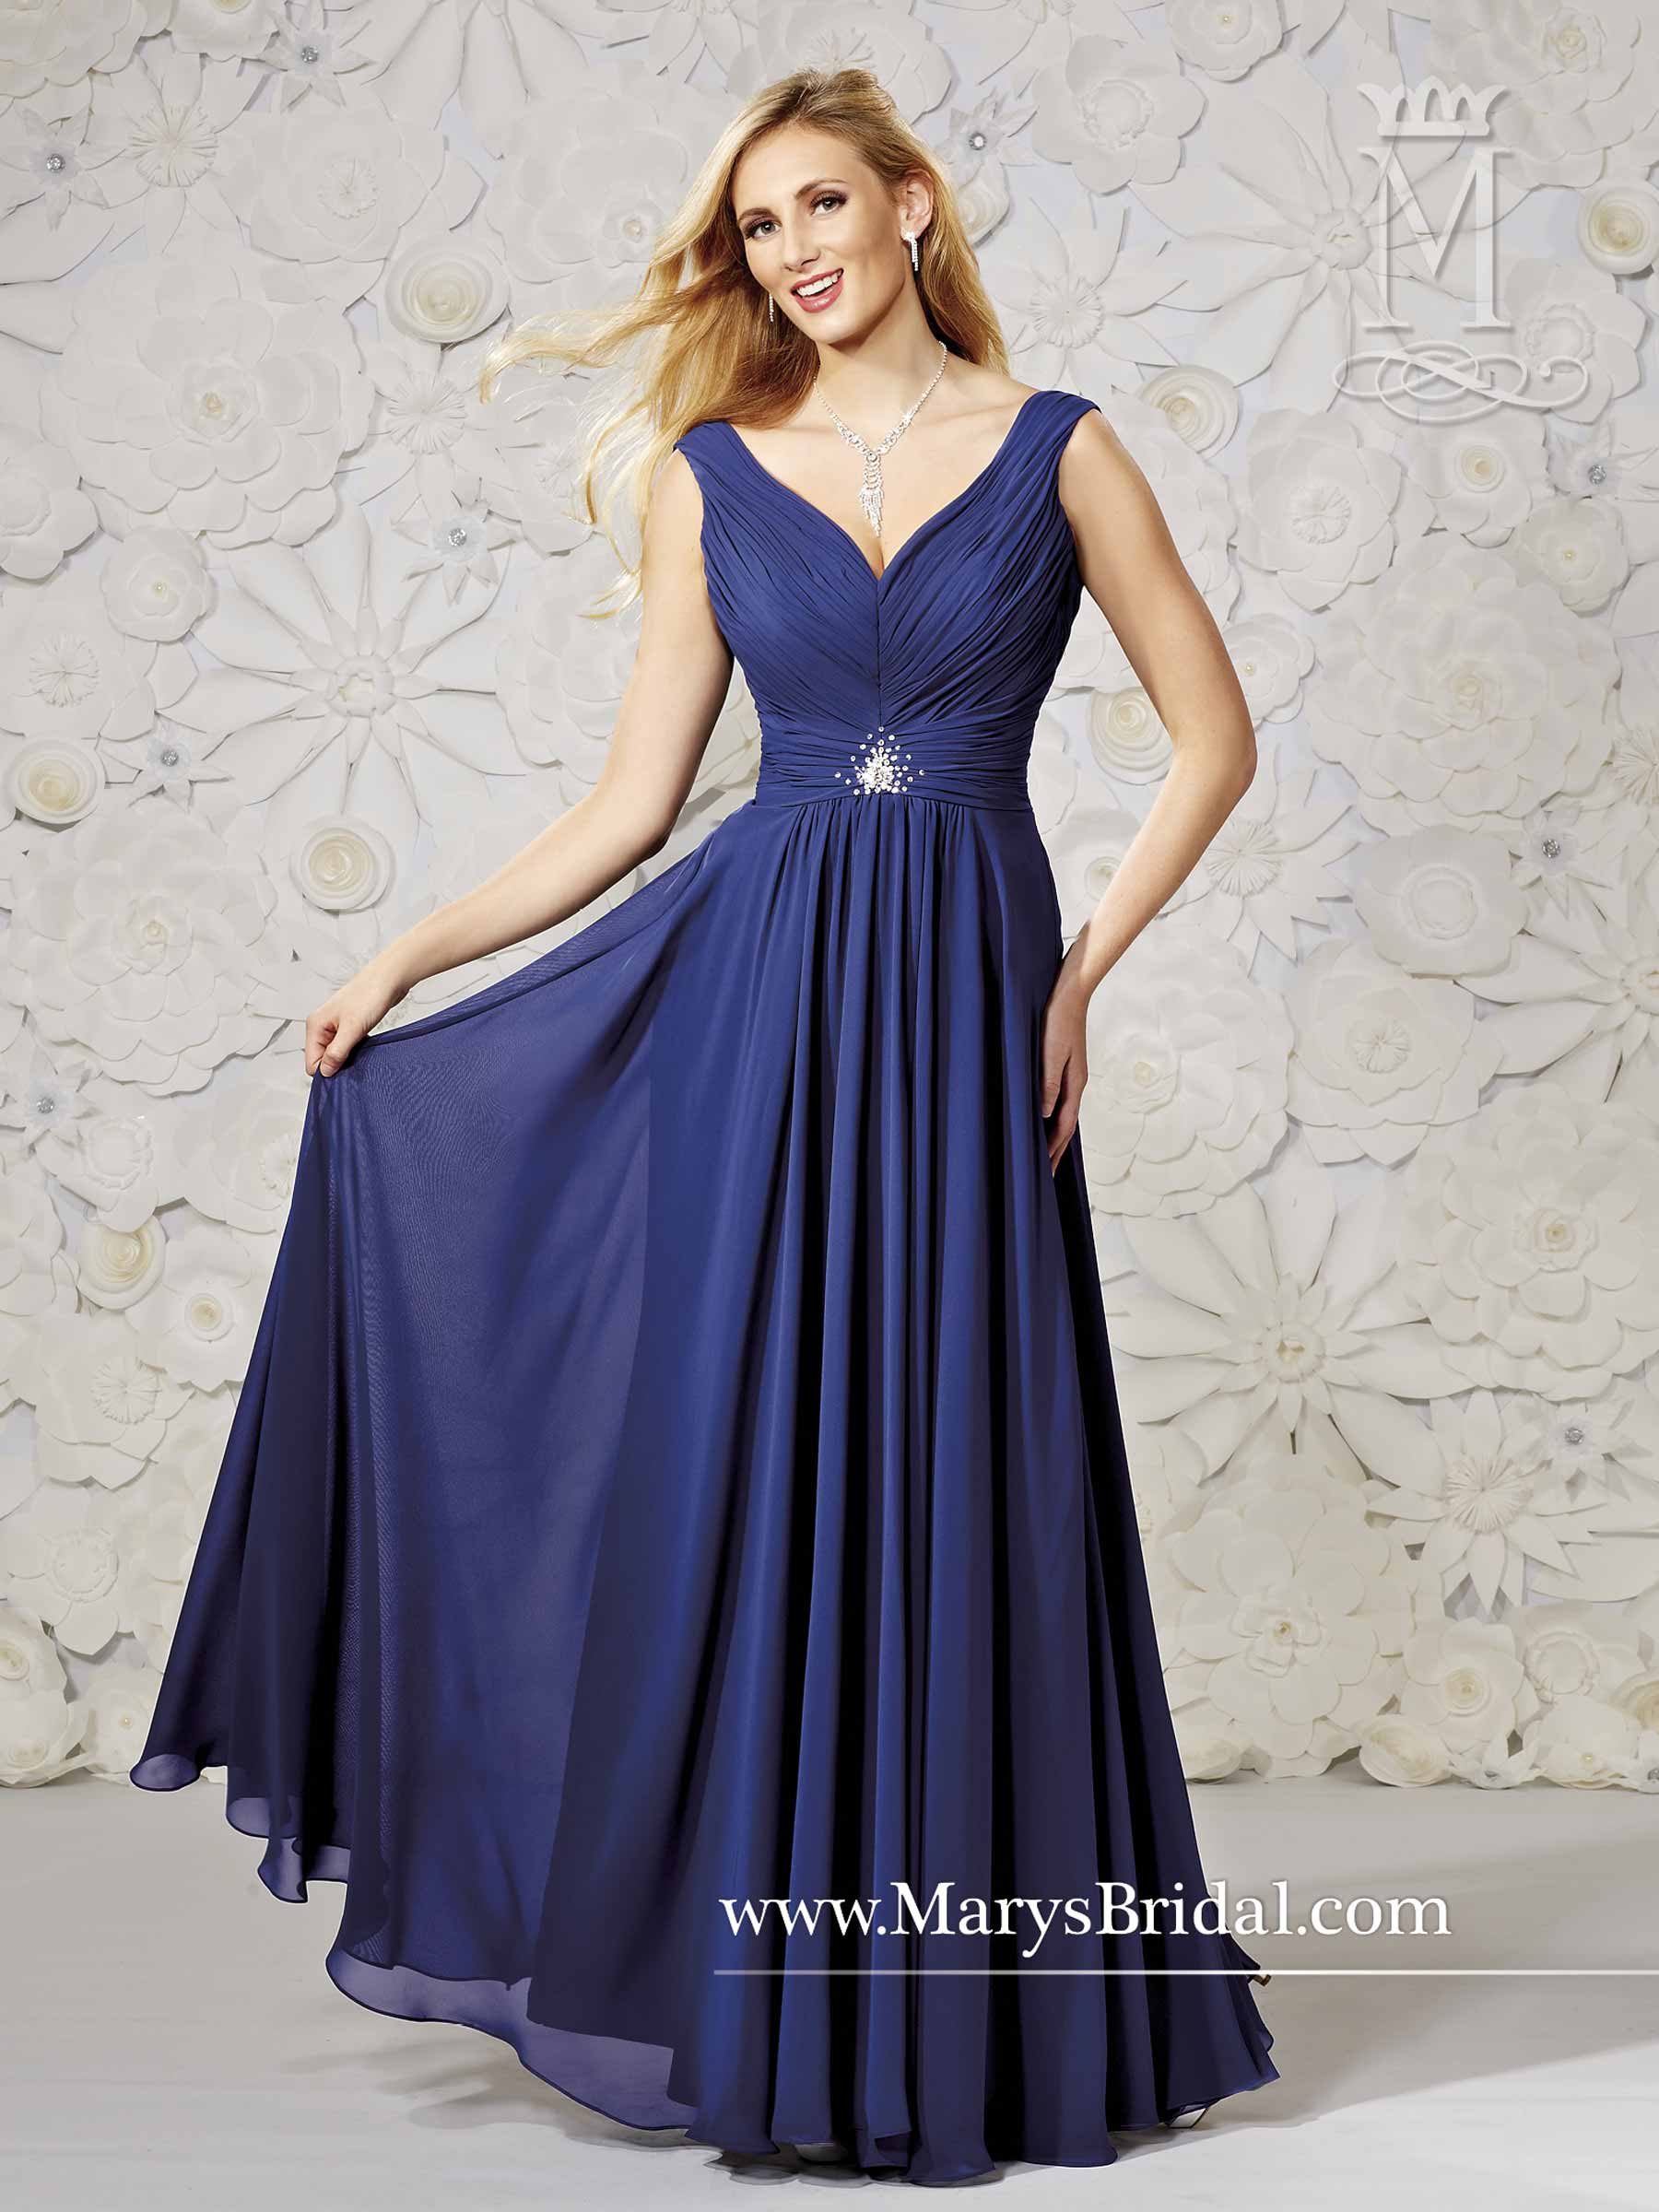 Amalia bridesmaid dresses style m1809 in royal color amalia bridesmaid dresses amalia style m1809 ombrellifo Image collections